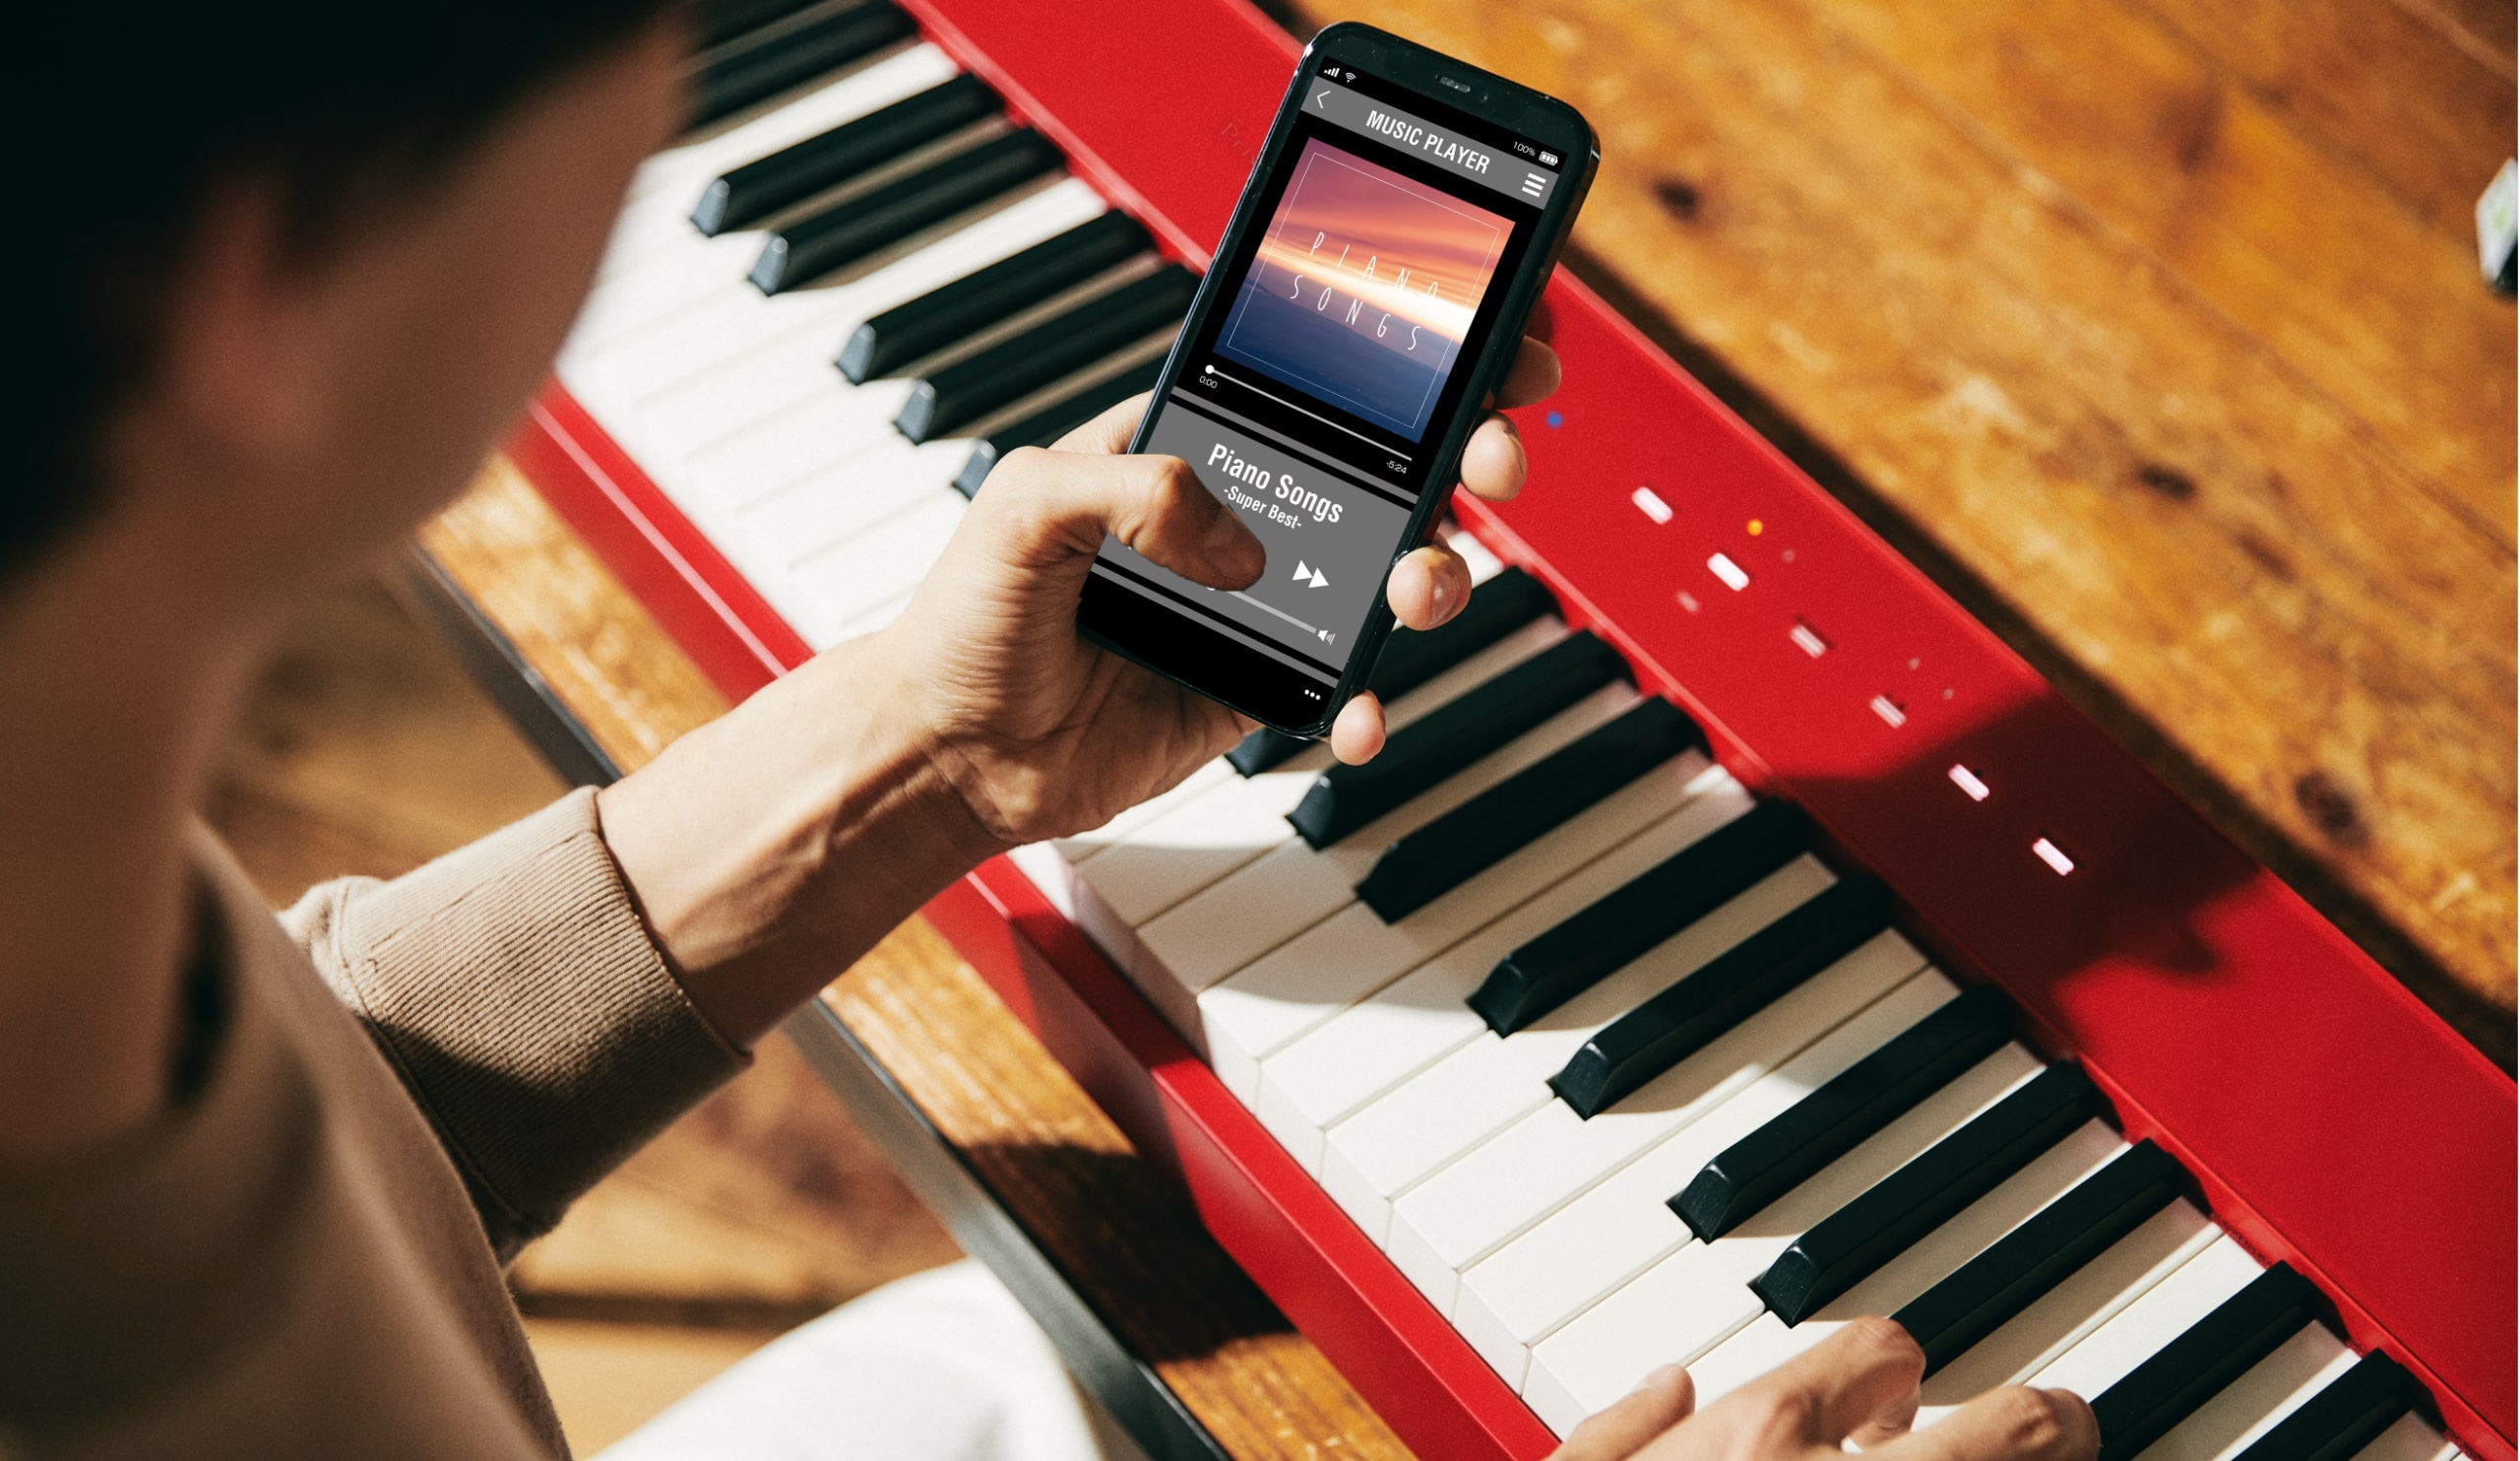 Music Play on with Bluetooth Audio